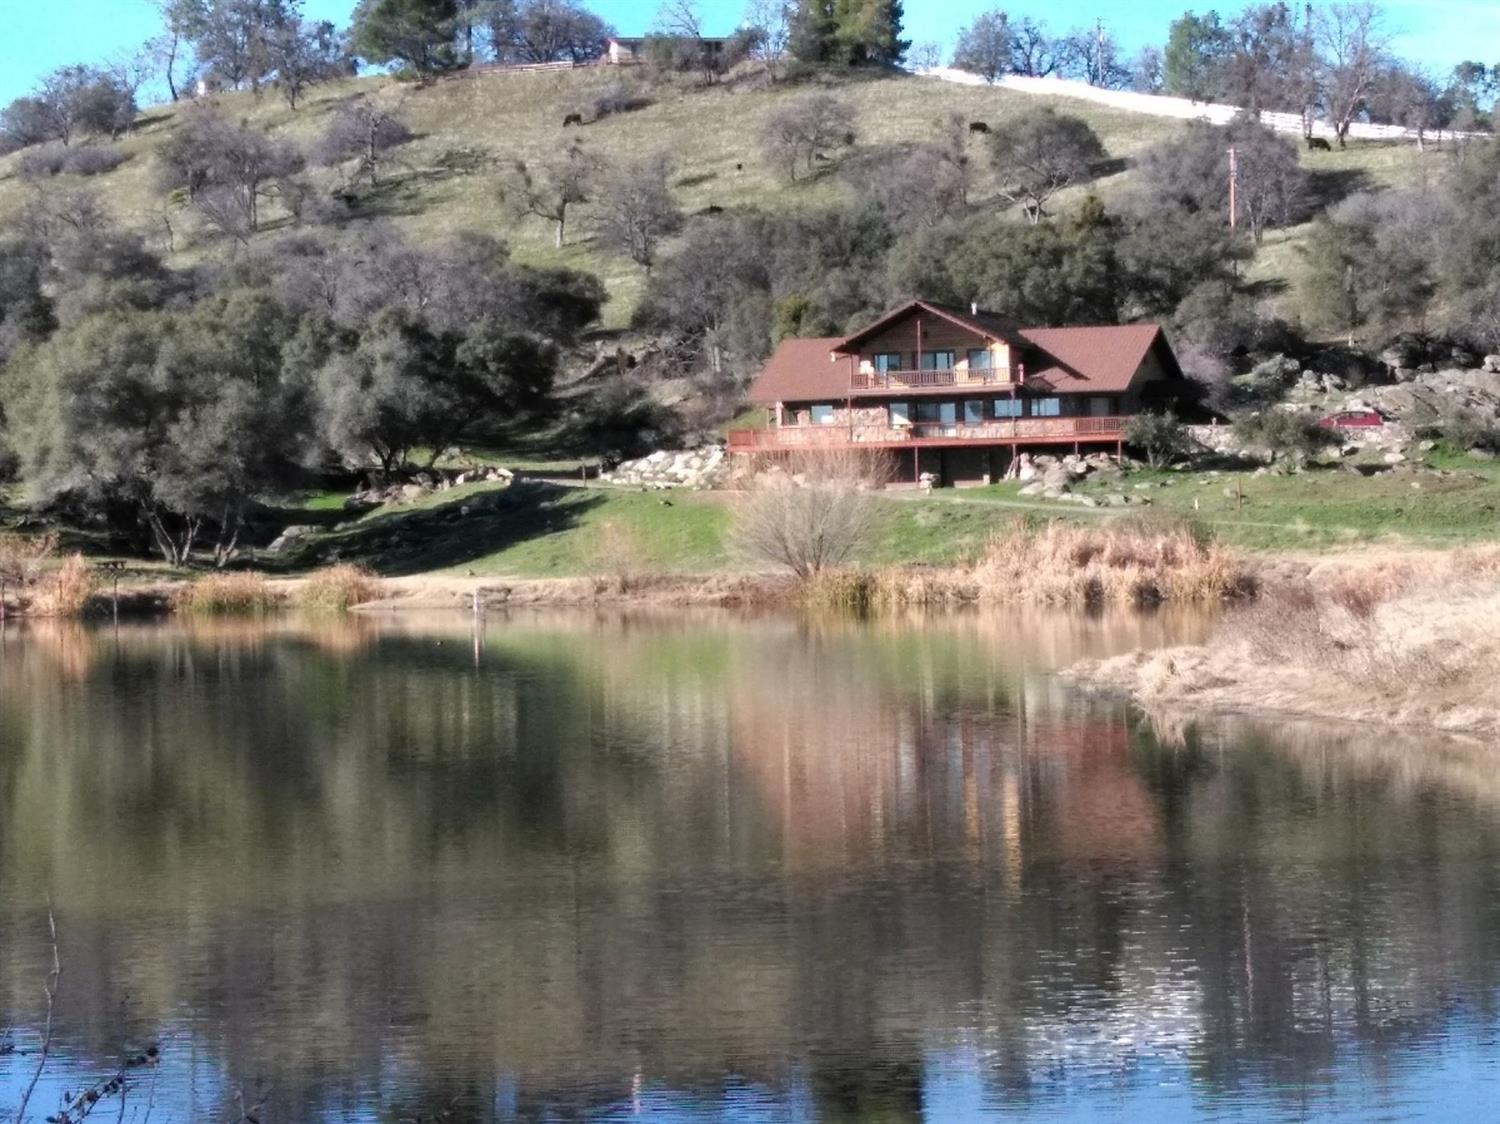 Own your very own private lake! This 6500 sq. ft. home sits on 58+ acres. Additionally, there is a very nice guest, ranch hand modular home. This property has an abundance of wildlife and families of geese that return home annually. The home is expertly designed for lots of family and friends to enjoy, with 5 BR and 4BA. Almost every room has a unique design made of wood inlaid in the ceiling. Spacious, sunlit rooms with awesome views are a must see. Ground level features a multi car garage with storage rooms. There are barns that are perfect for horses, storage, or work areas. Beautiful decks overlook the sparkling lake. Gated entrance. Deer blind. Pig feeder. Shooting range. RV hookups. Hunting. Fishing. Horse riding. Quads, and more.